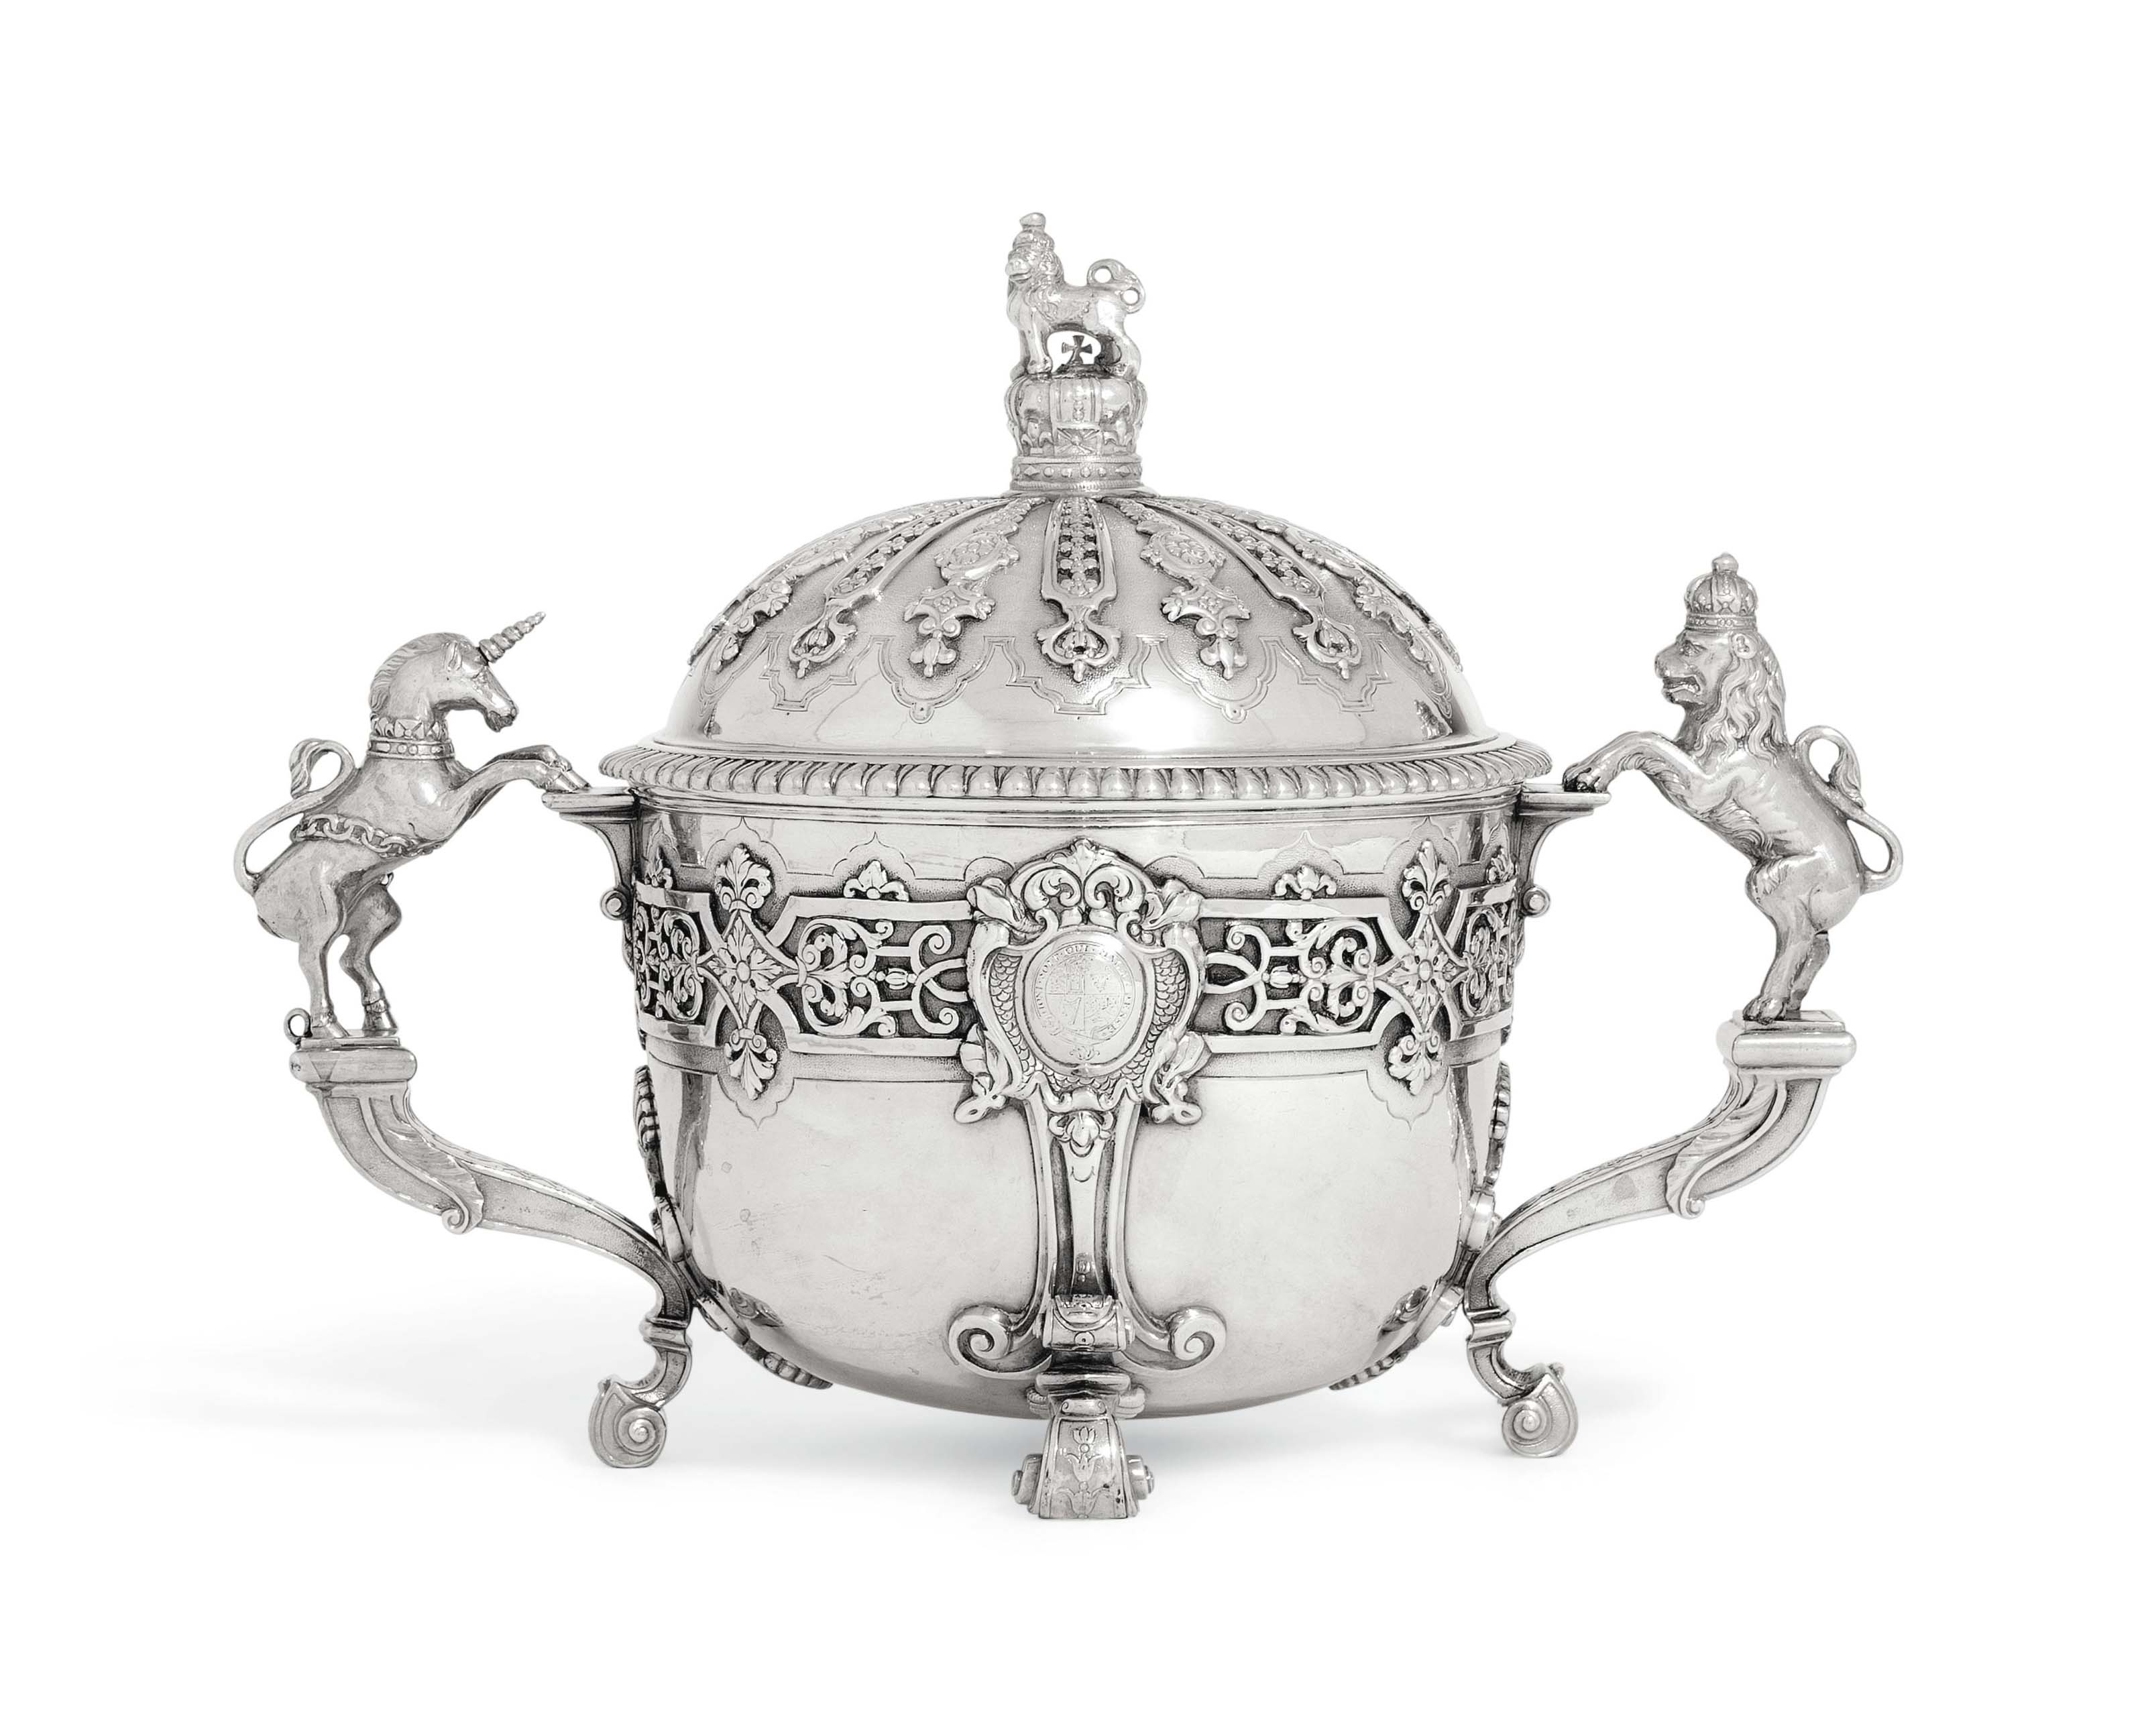 A GEORGE II SILVER CHRISTENING BOWL AND COVER